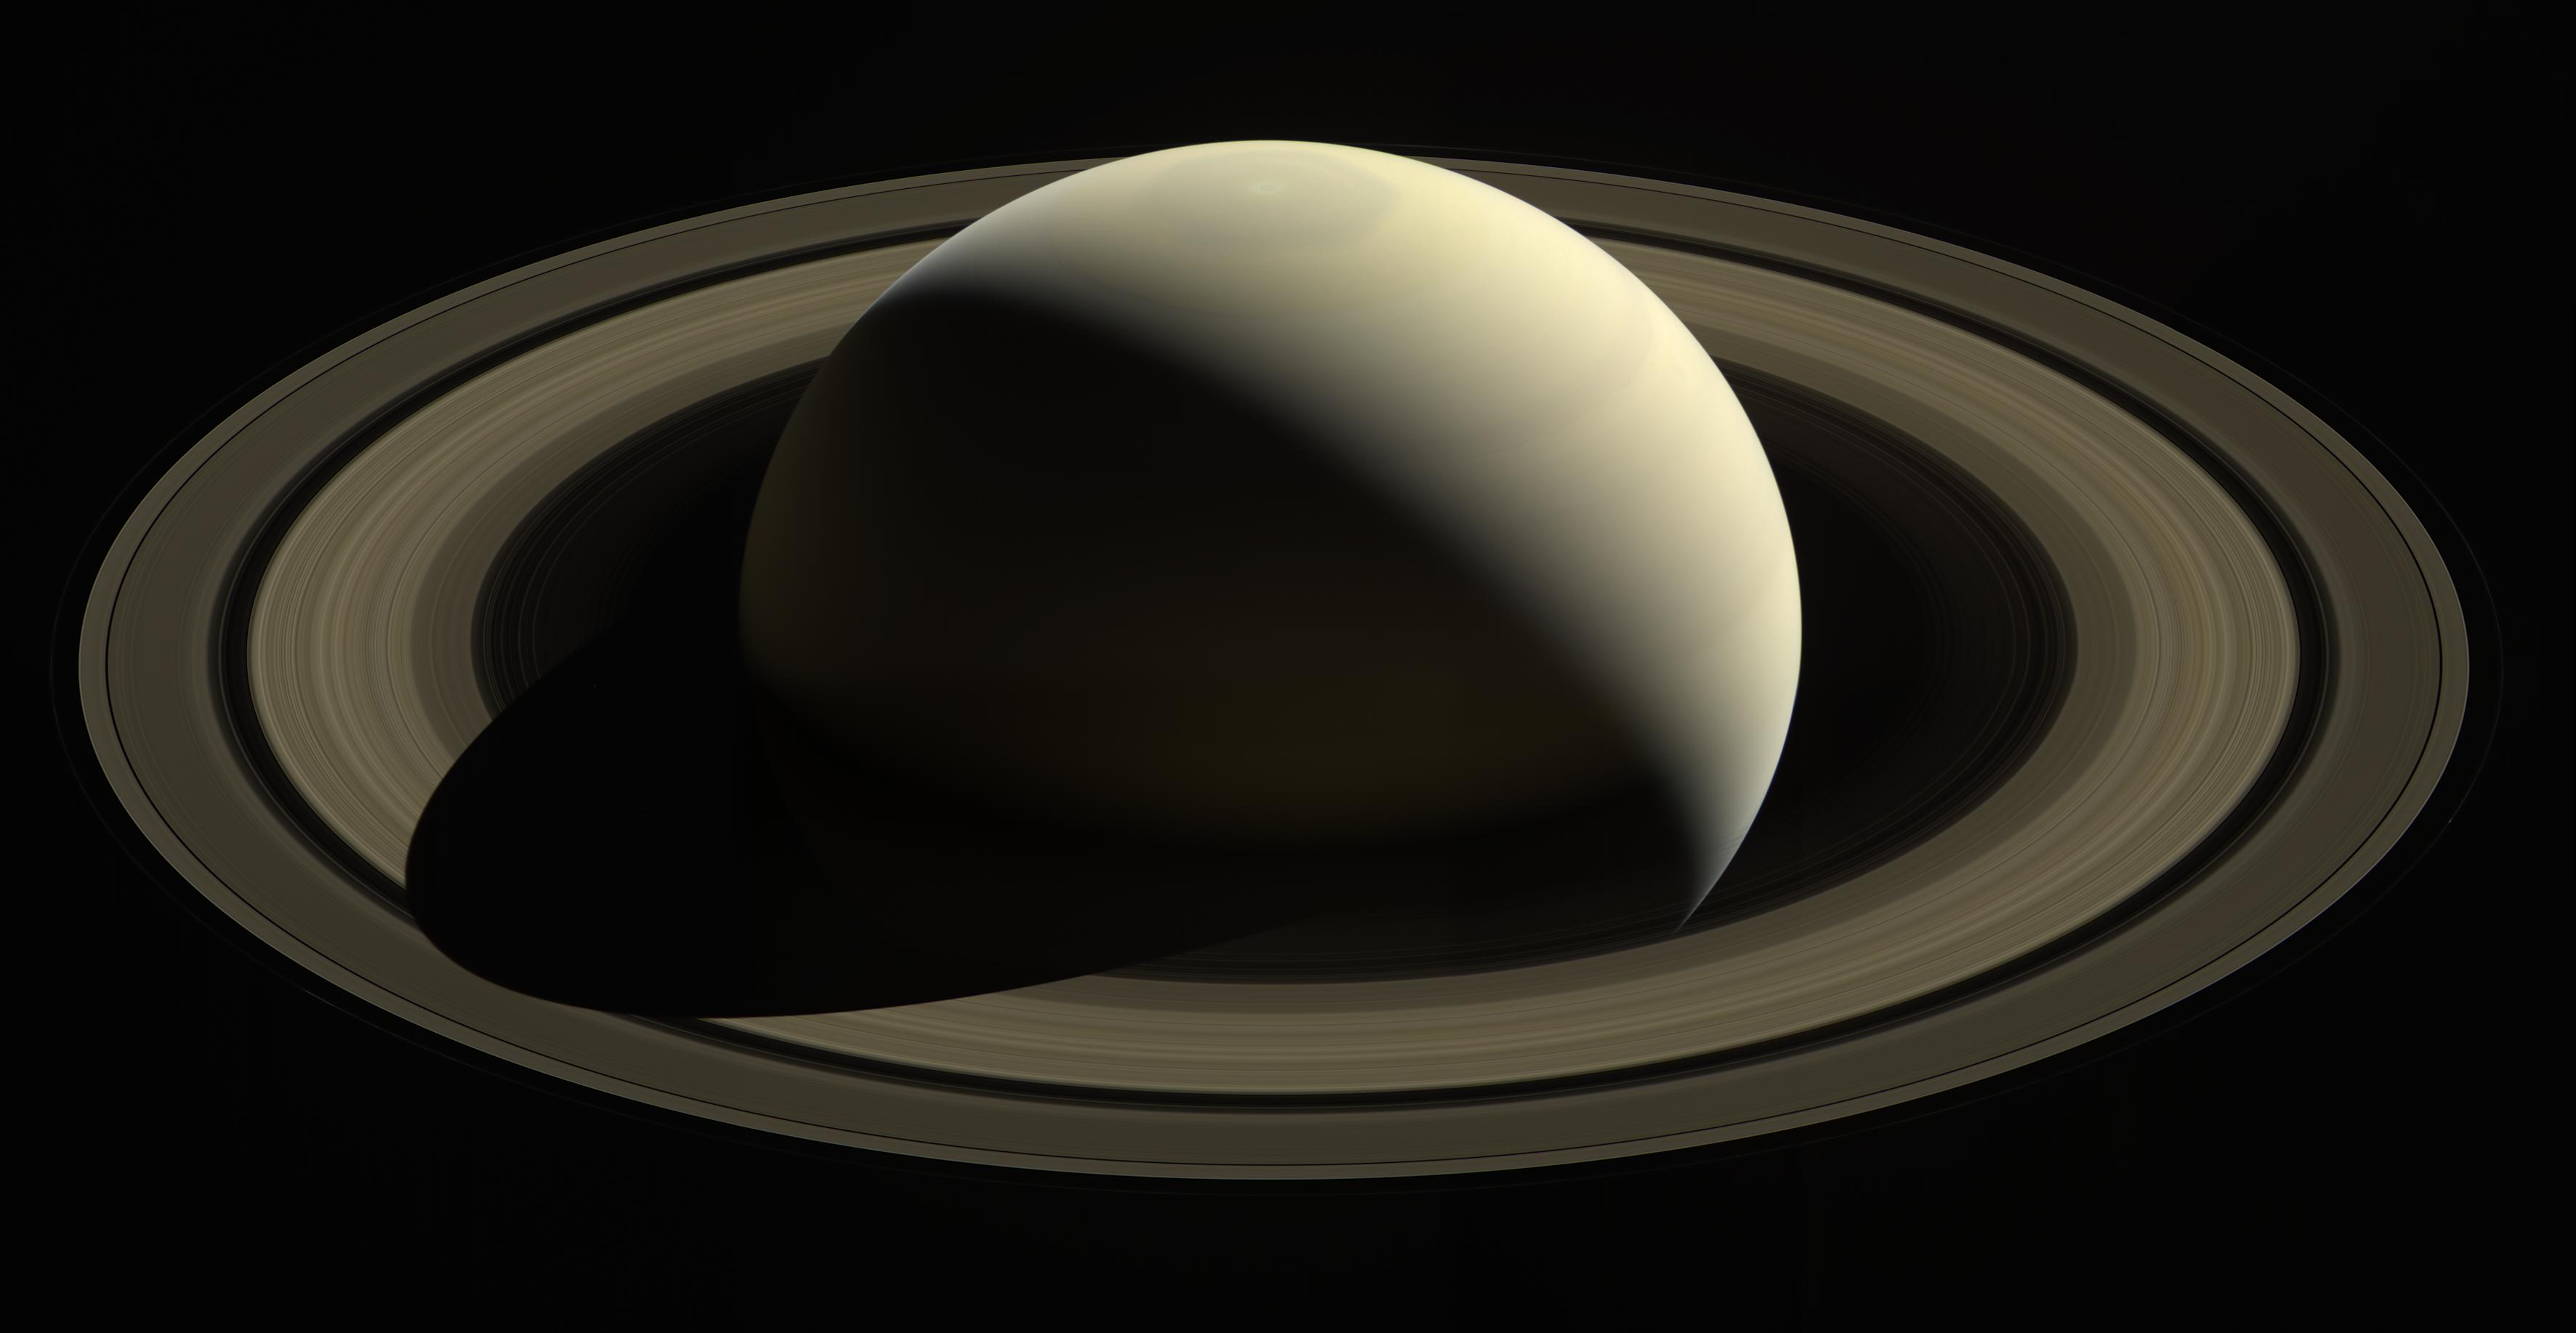 Space in Images  2017  09  Saturn